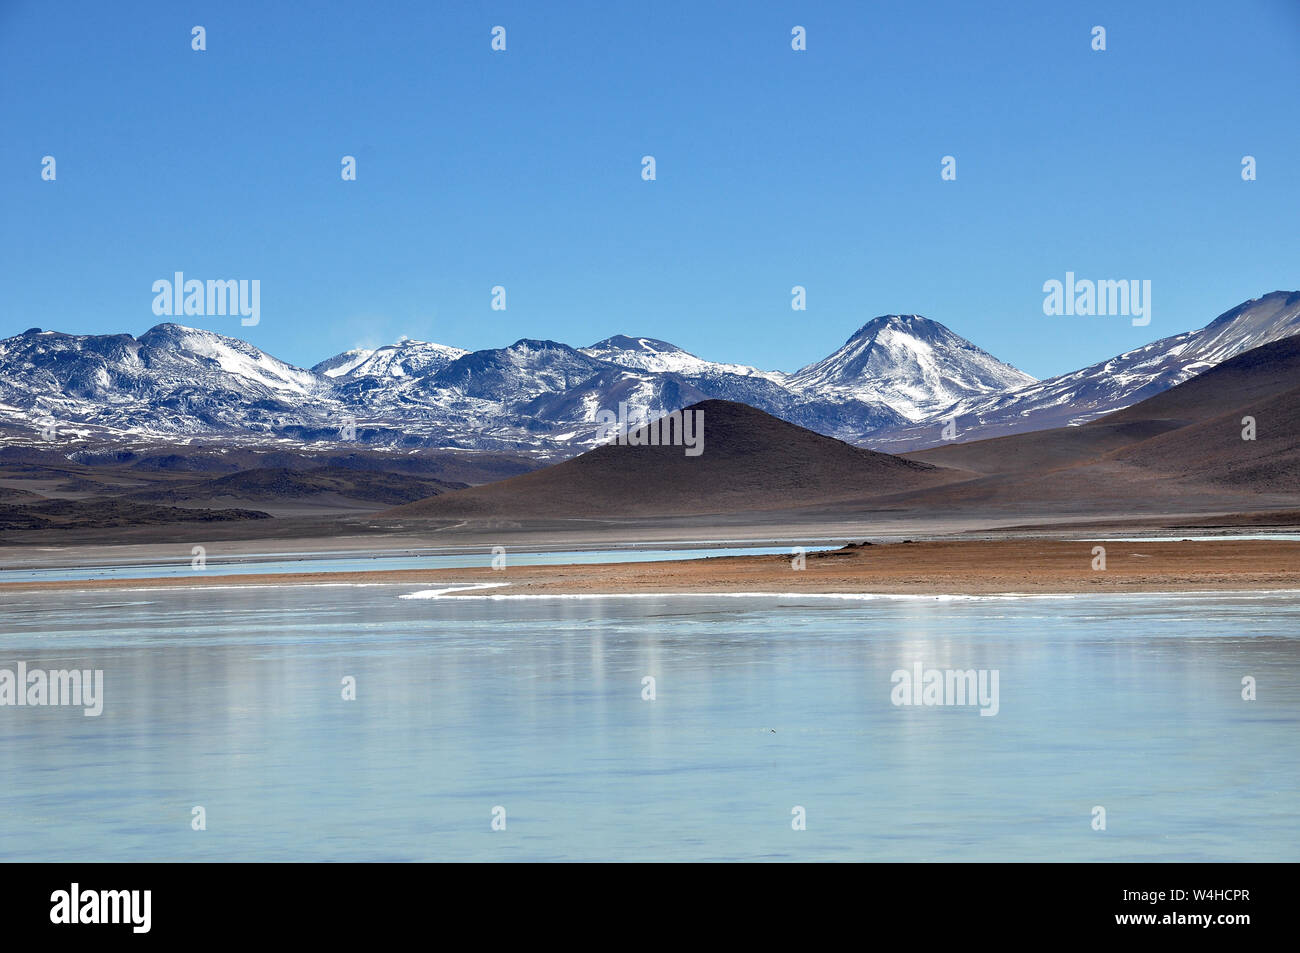 Bolivian Lagunas In The Andes Mountains Region Over 4000 Meters Above Sealevel Stock Photo Alamy